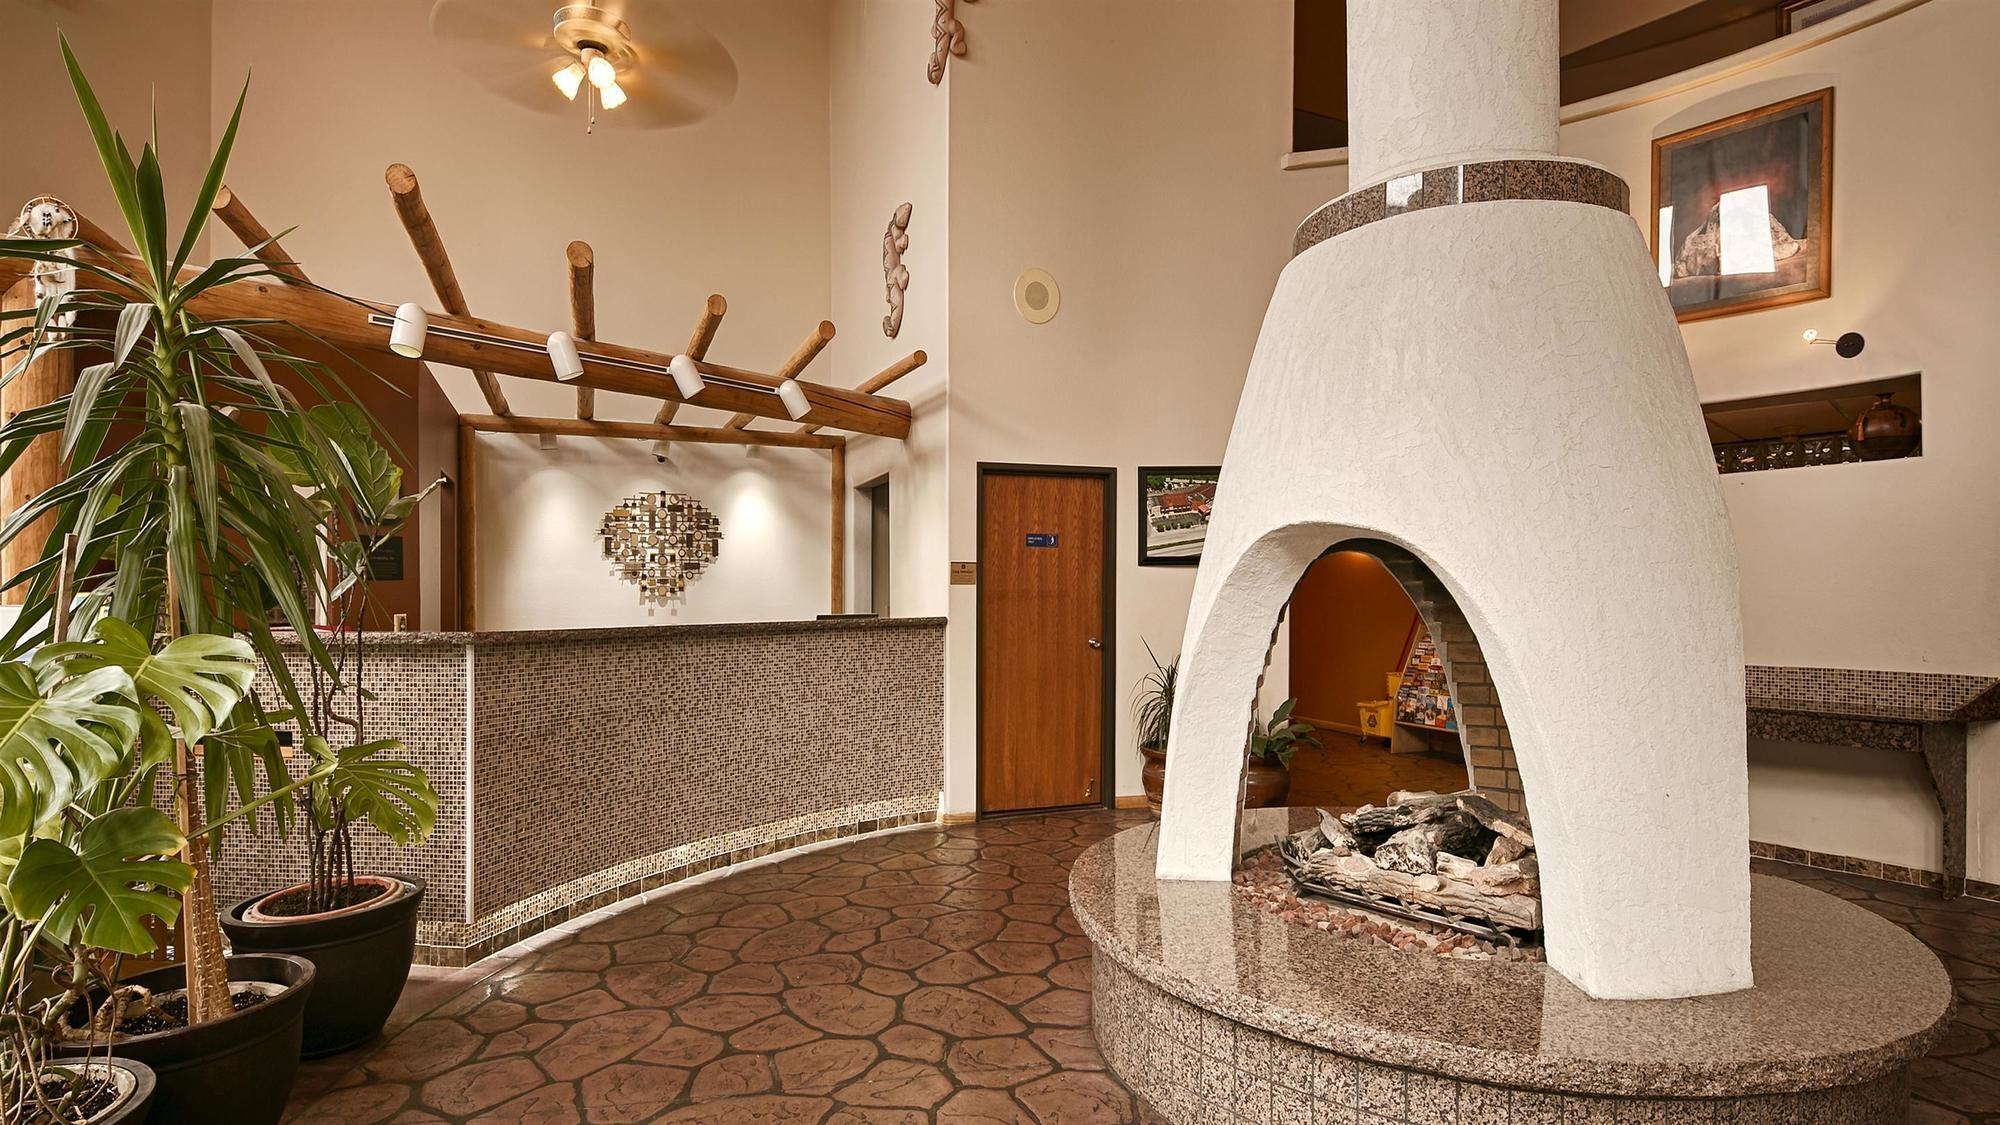 Fort Collins Hotel Coupons For Fort Collins Colorado